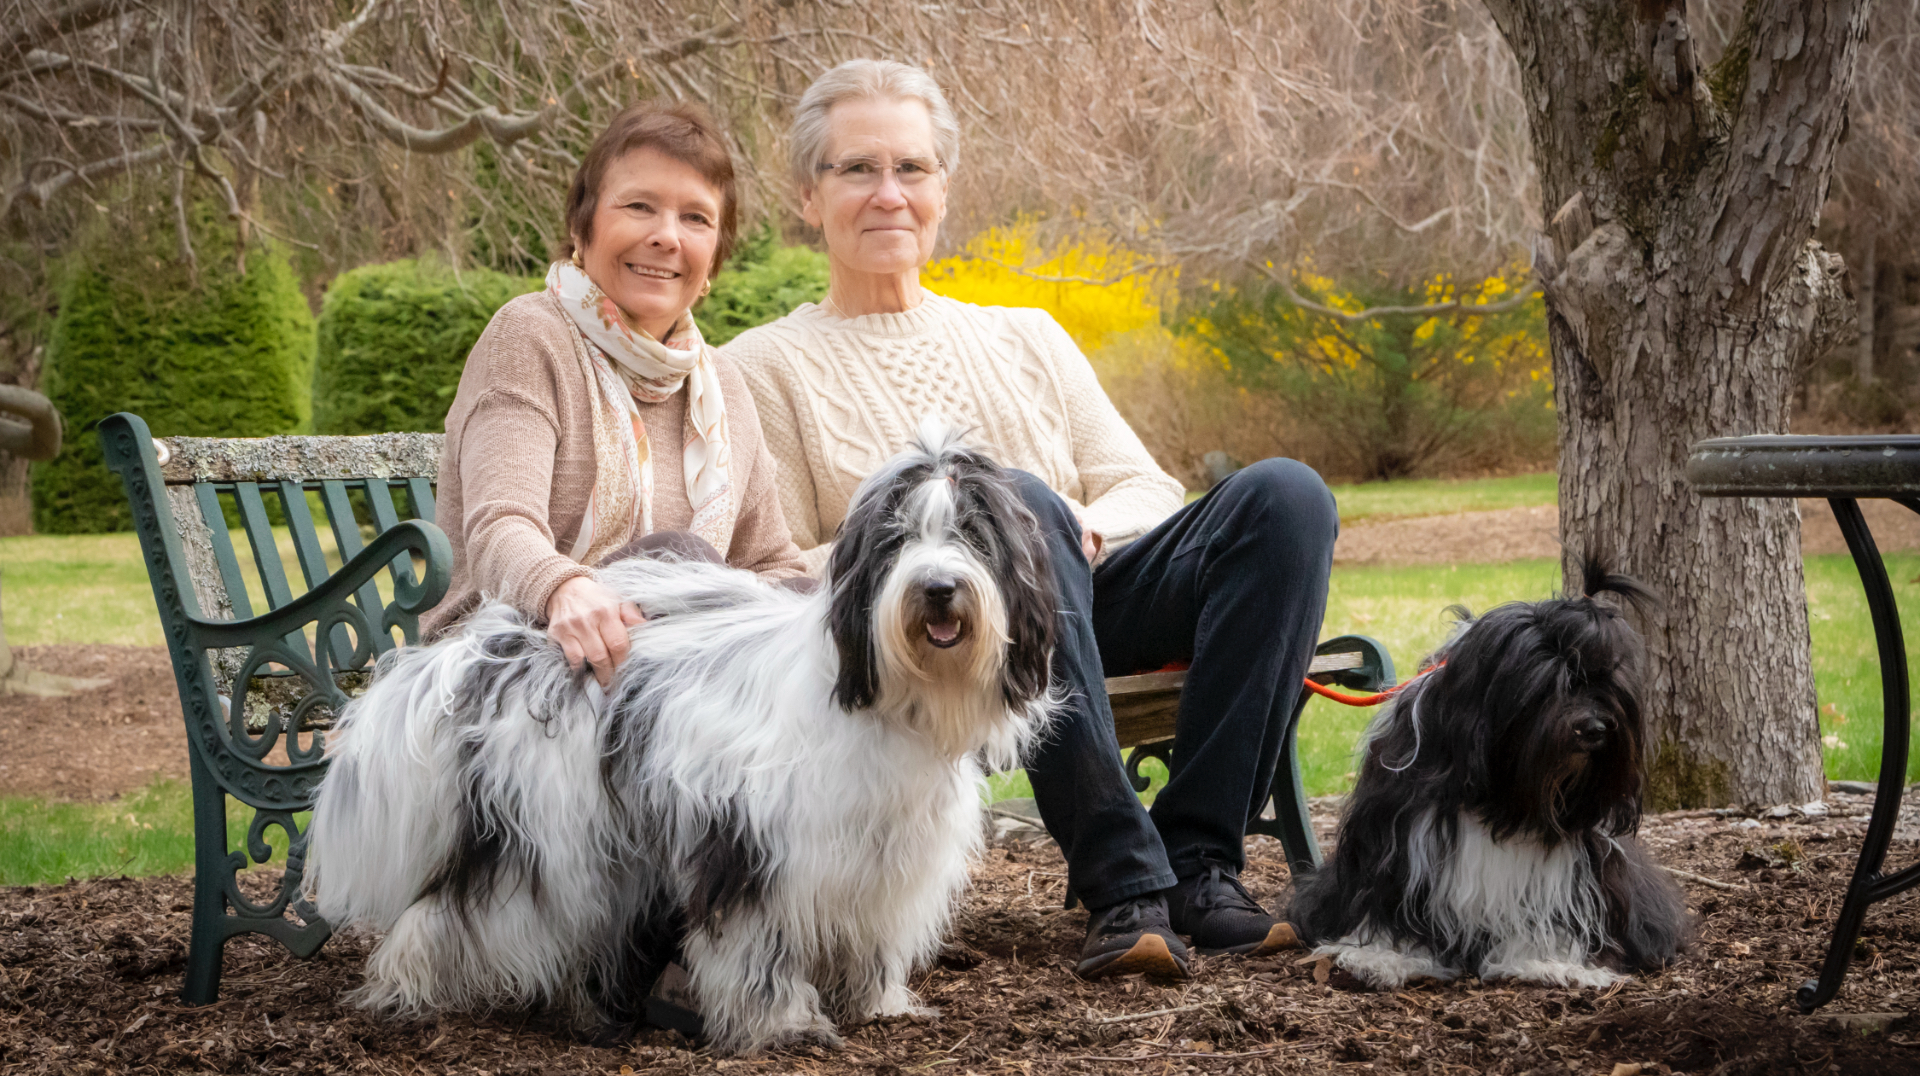 Dr. Irwin and her husband smile for the camera as they sit peacefully on a park bench alongside their slightly aloof dogs.